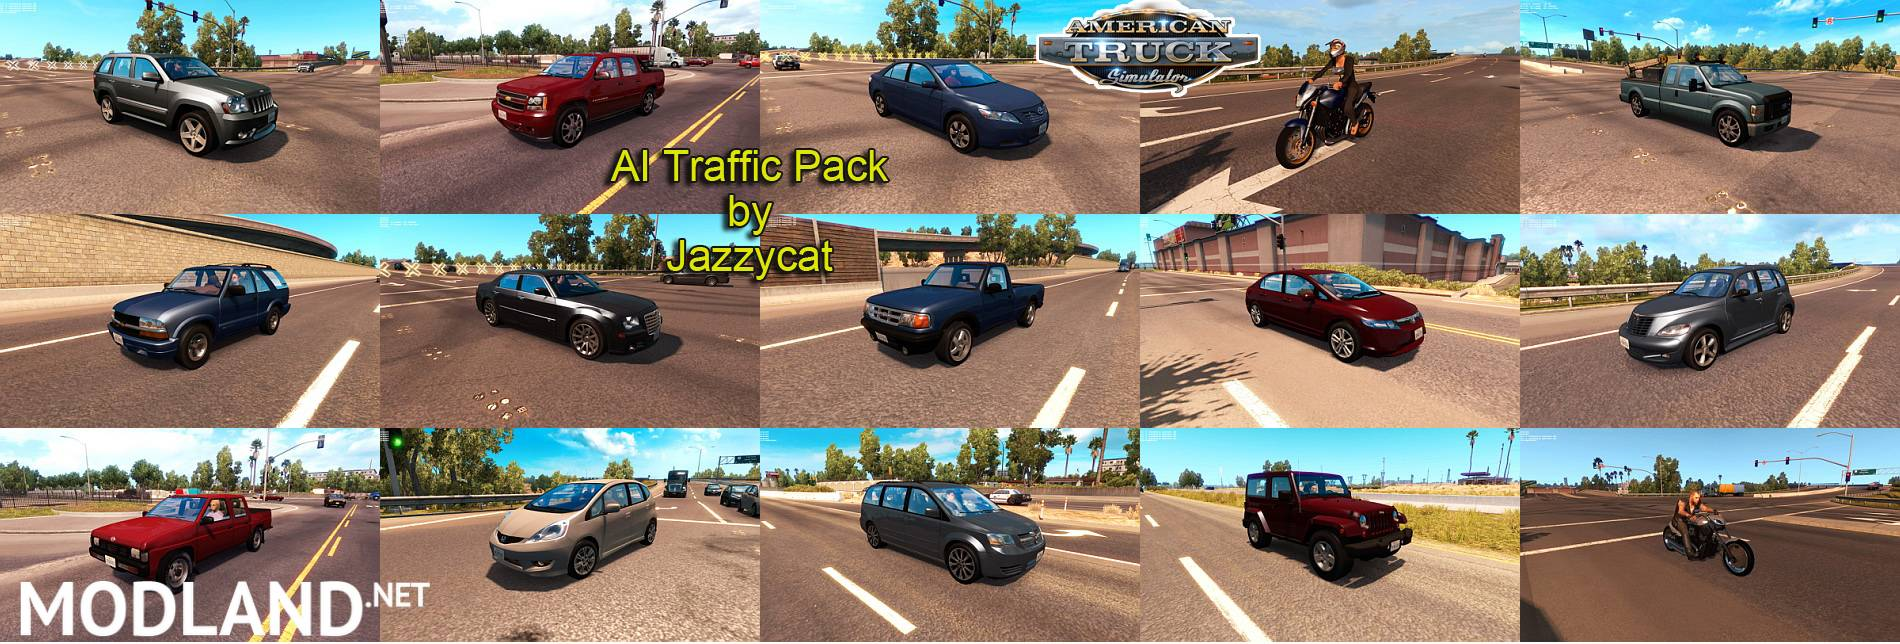 AI Traffic Pack for ATS by Jazzycat v1 0 mod for American